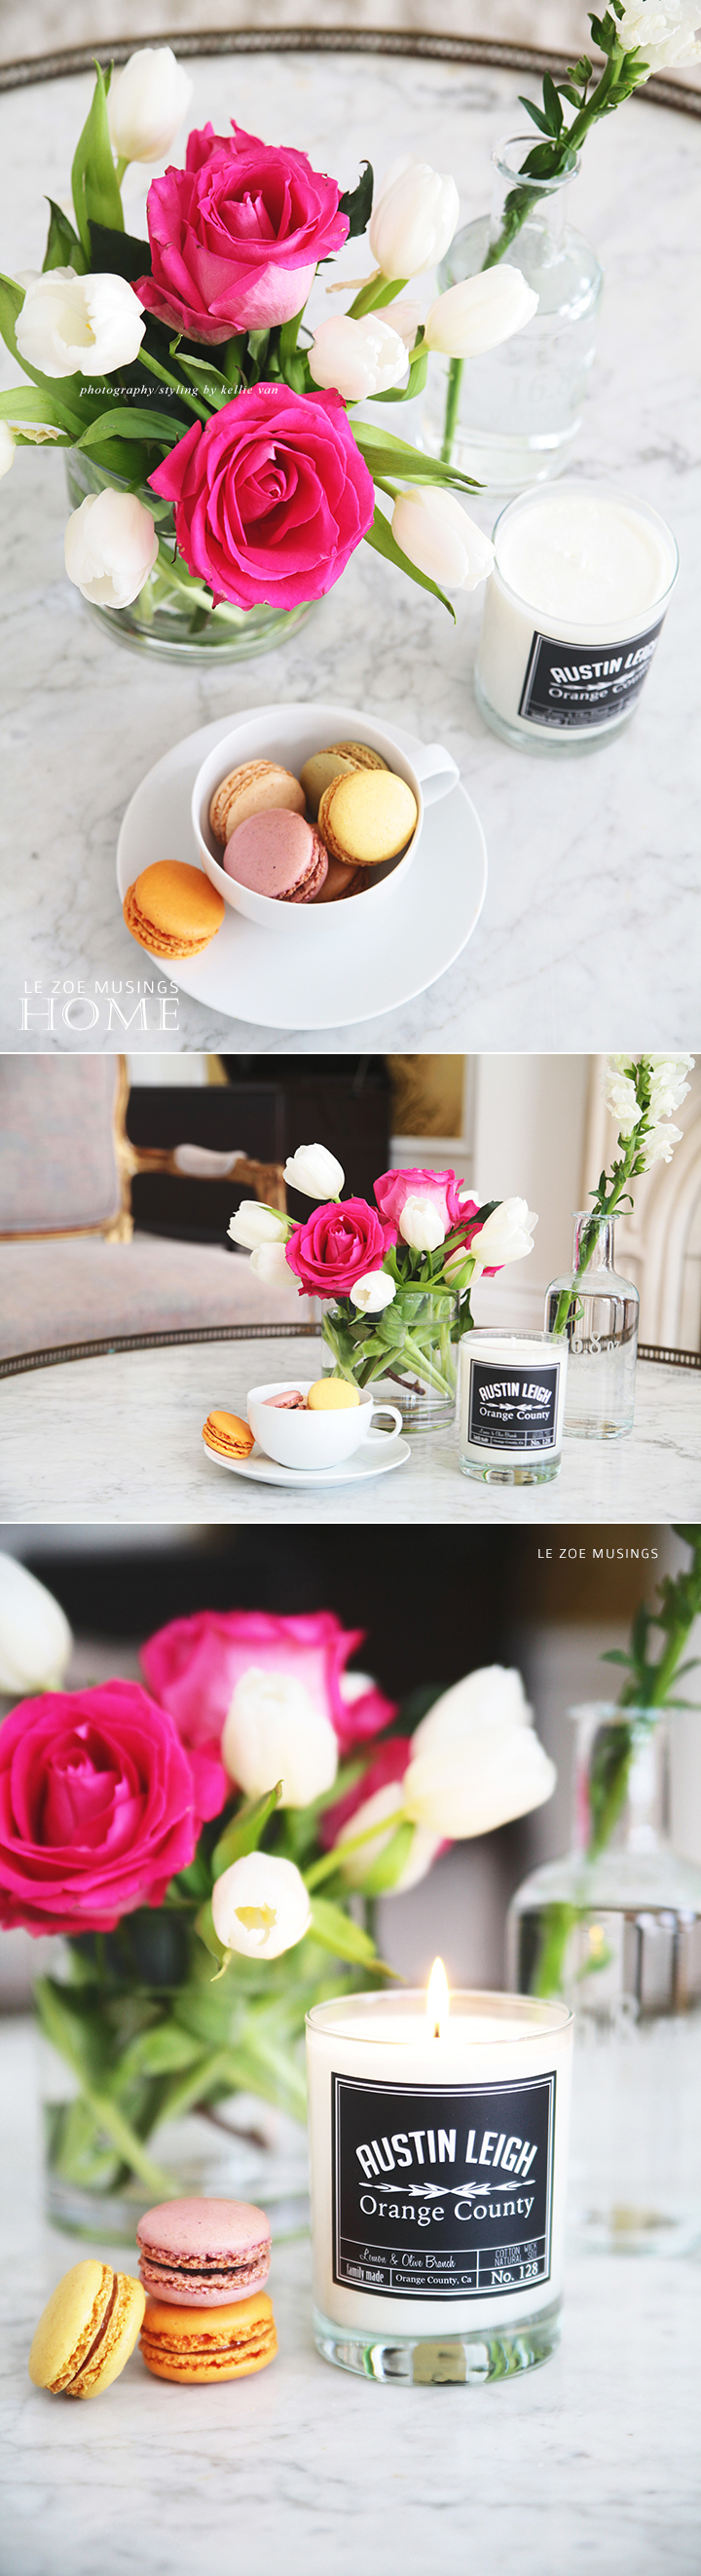 Spring-Ready Coffe Table 3 by Le Zoe Musings